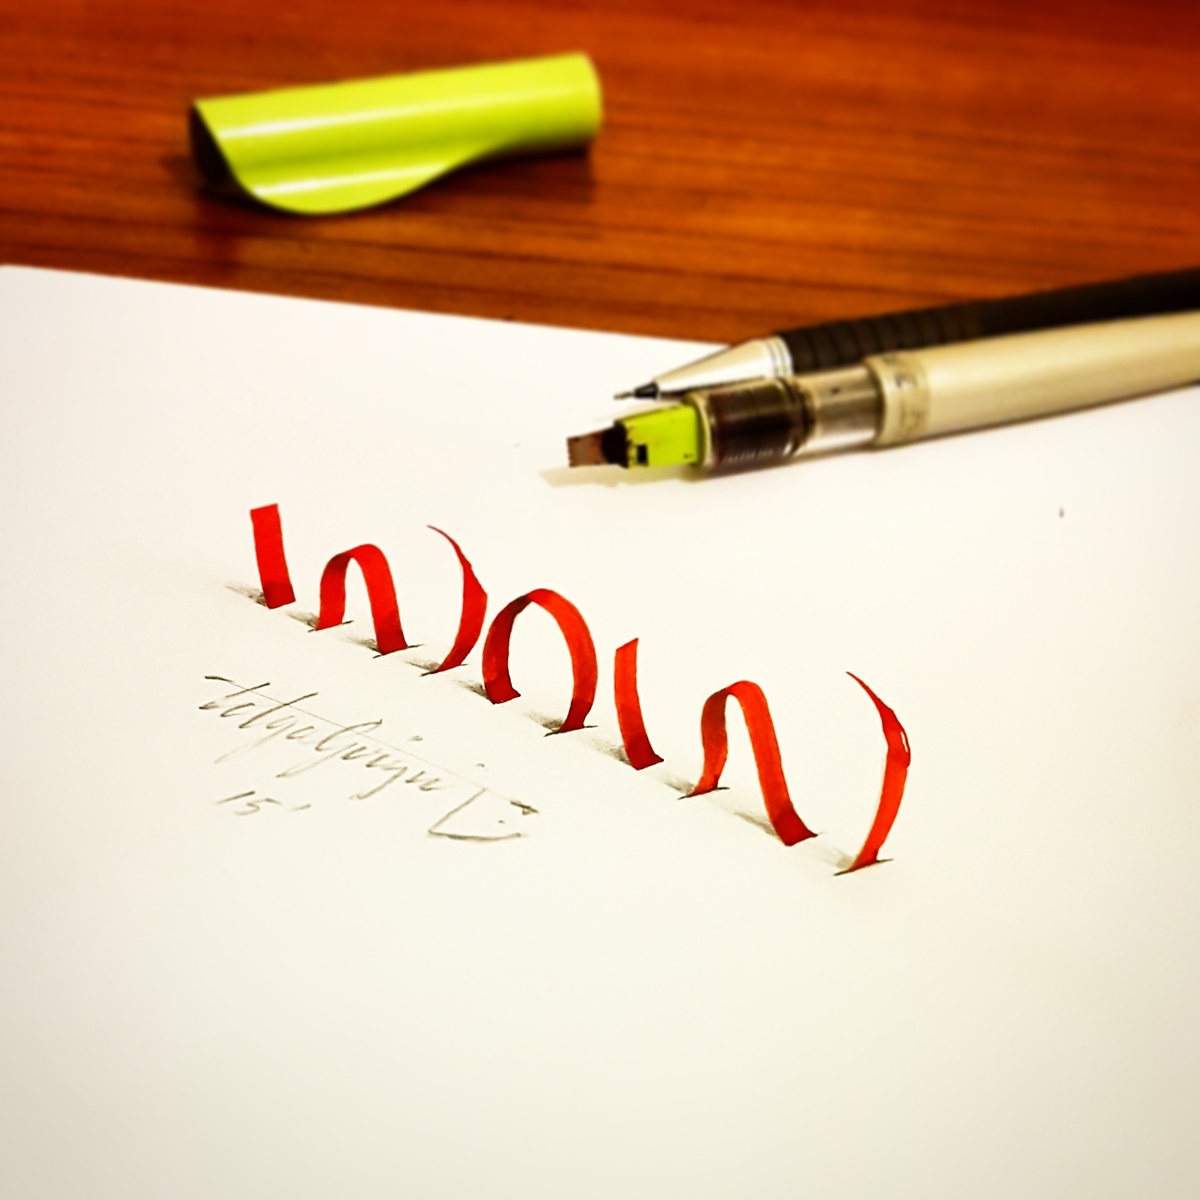 3d Lettering With Calligraphy Pens Pencil Part 5 On Behance